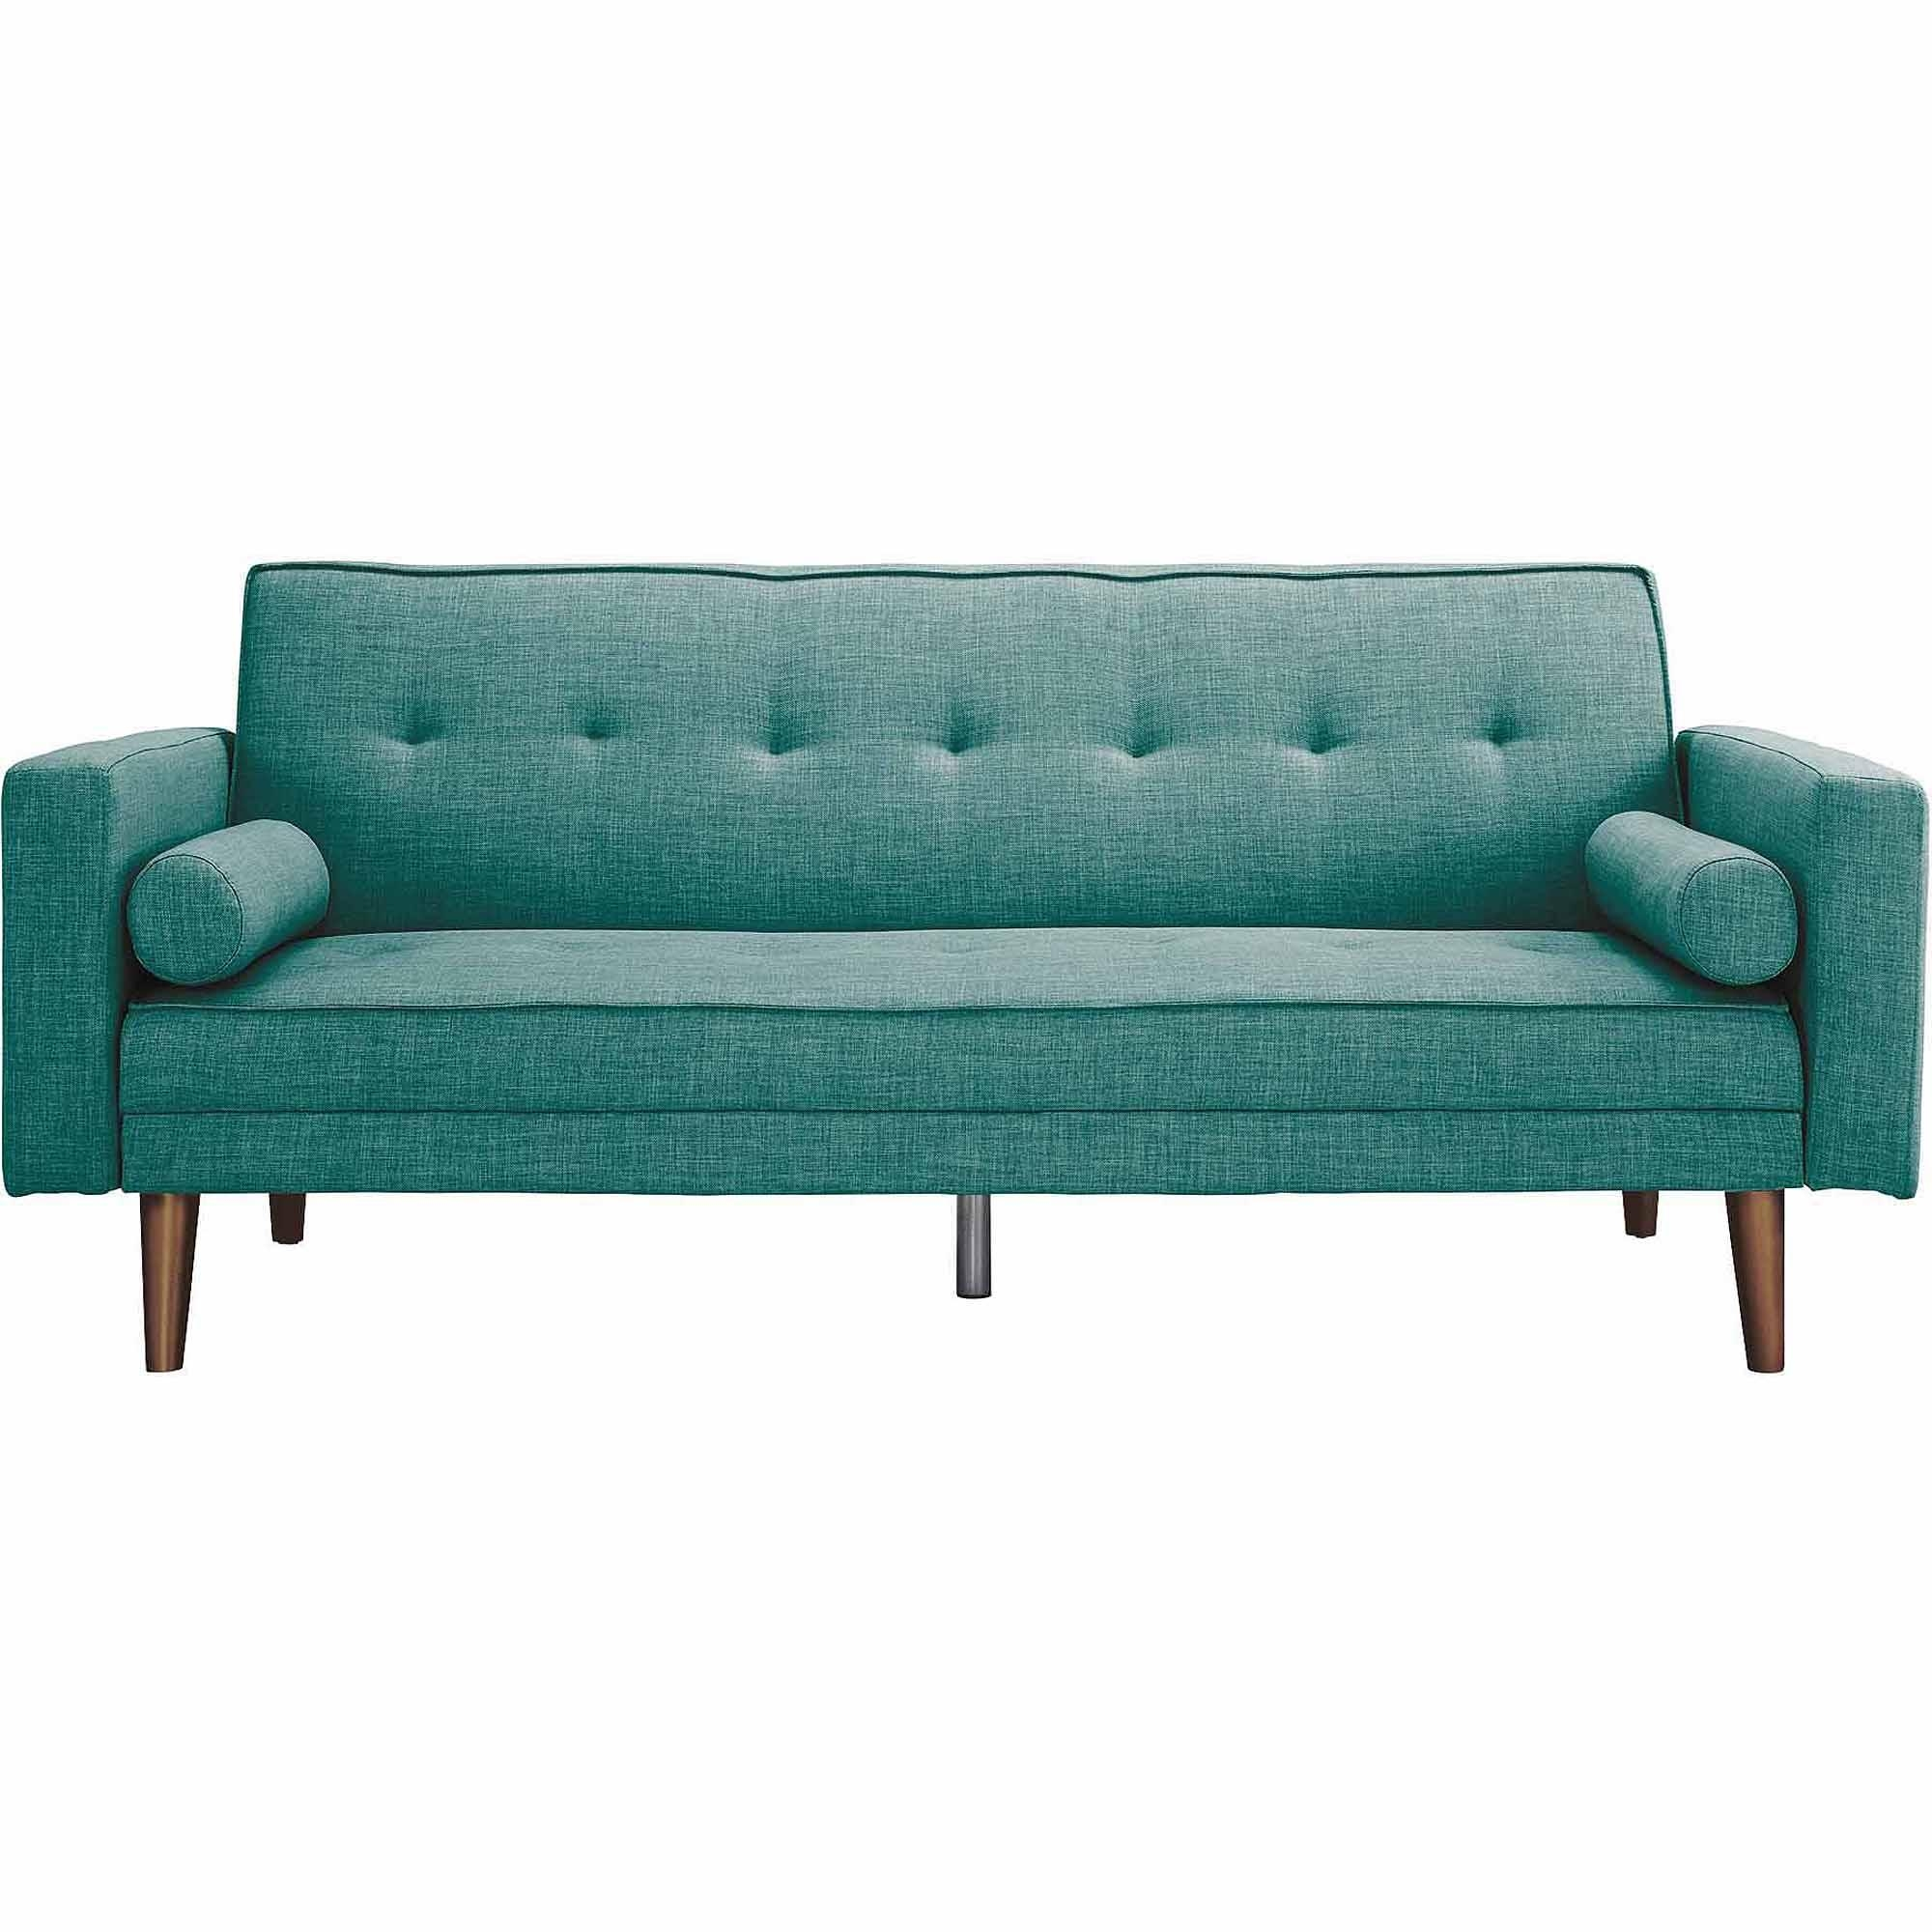 Furniture: Walmart Sofa Bed Futon | Walmart Futon Bed | Walmart Pertaining To Aqua Sofa Beds (Image 13 of 20)